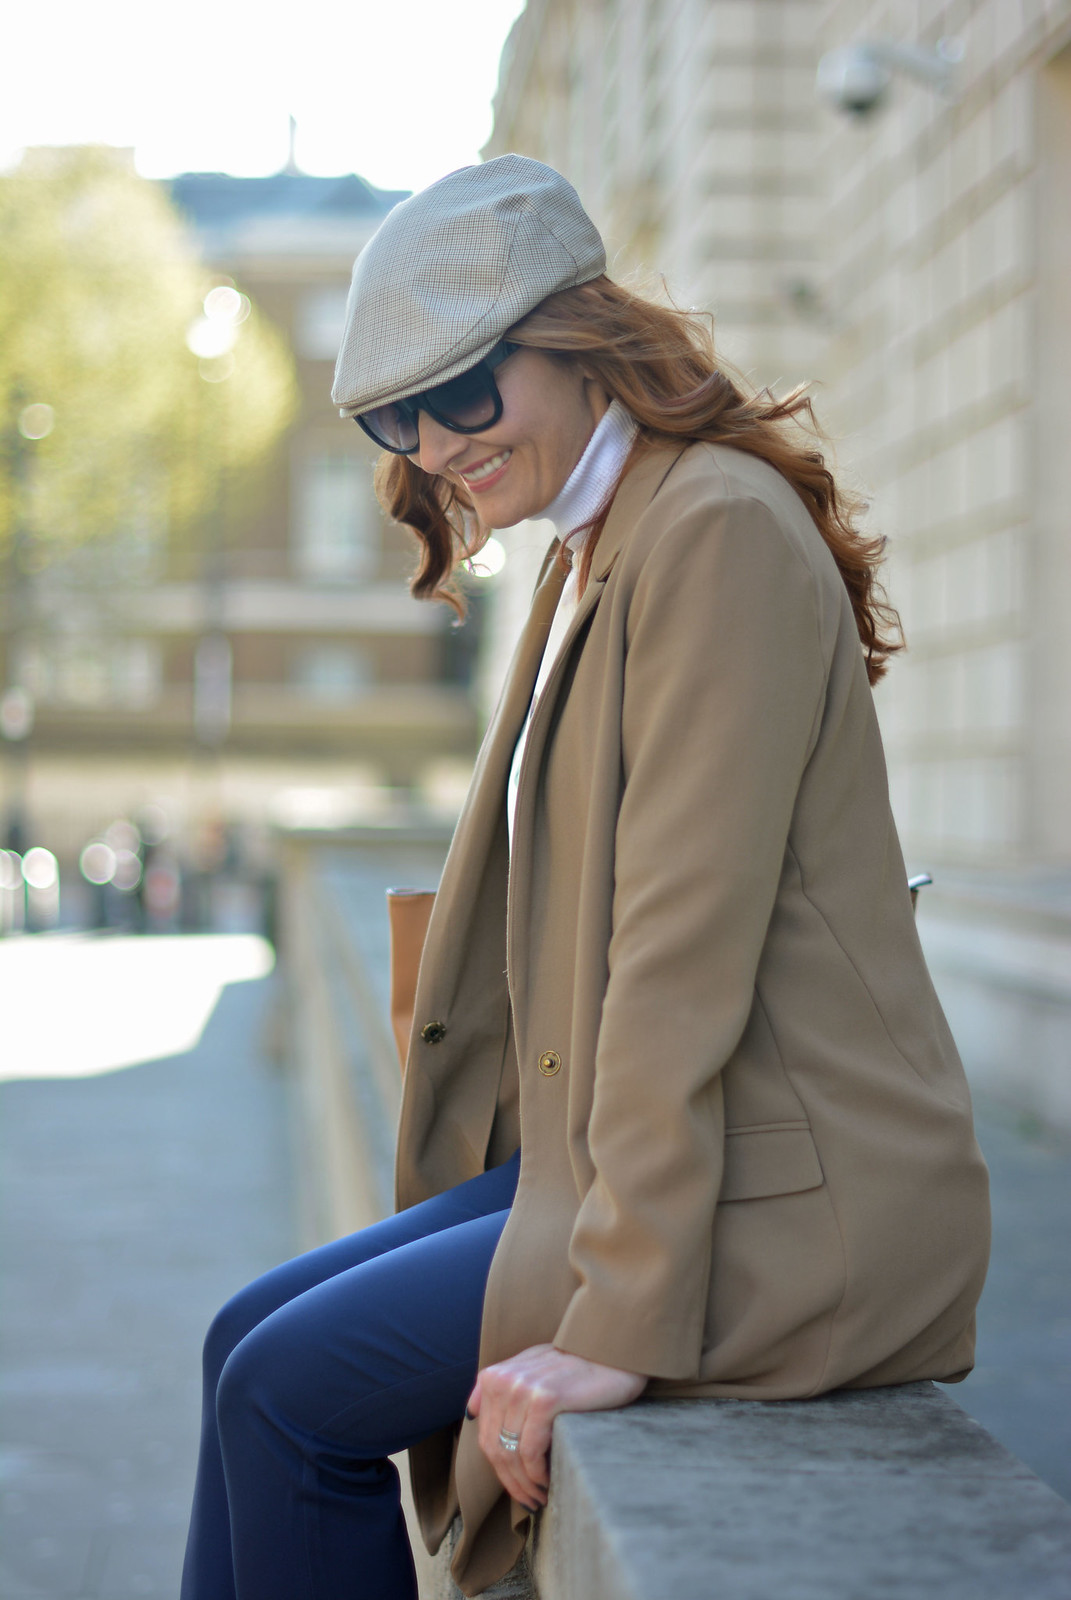 Comfy sightseeing outfit: Layers of longline camel blazer, navy trousers, flatcap